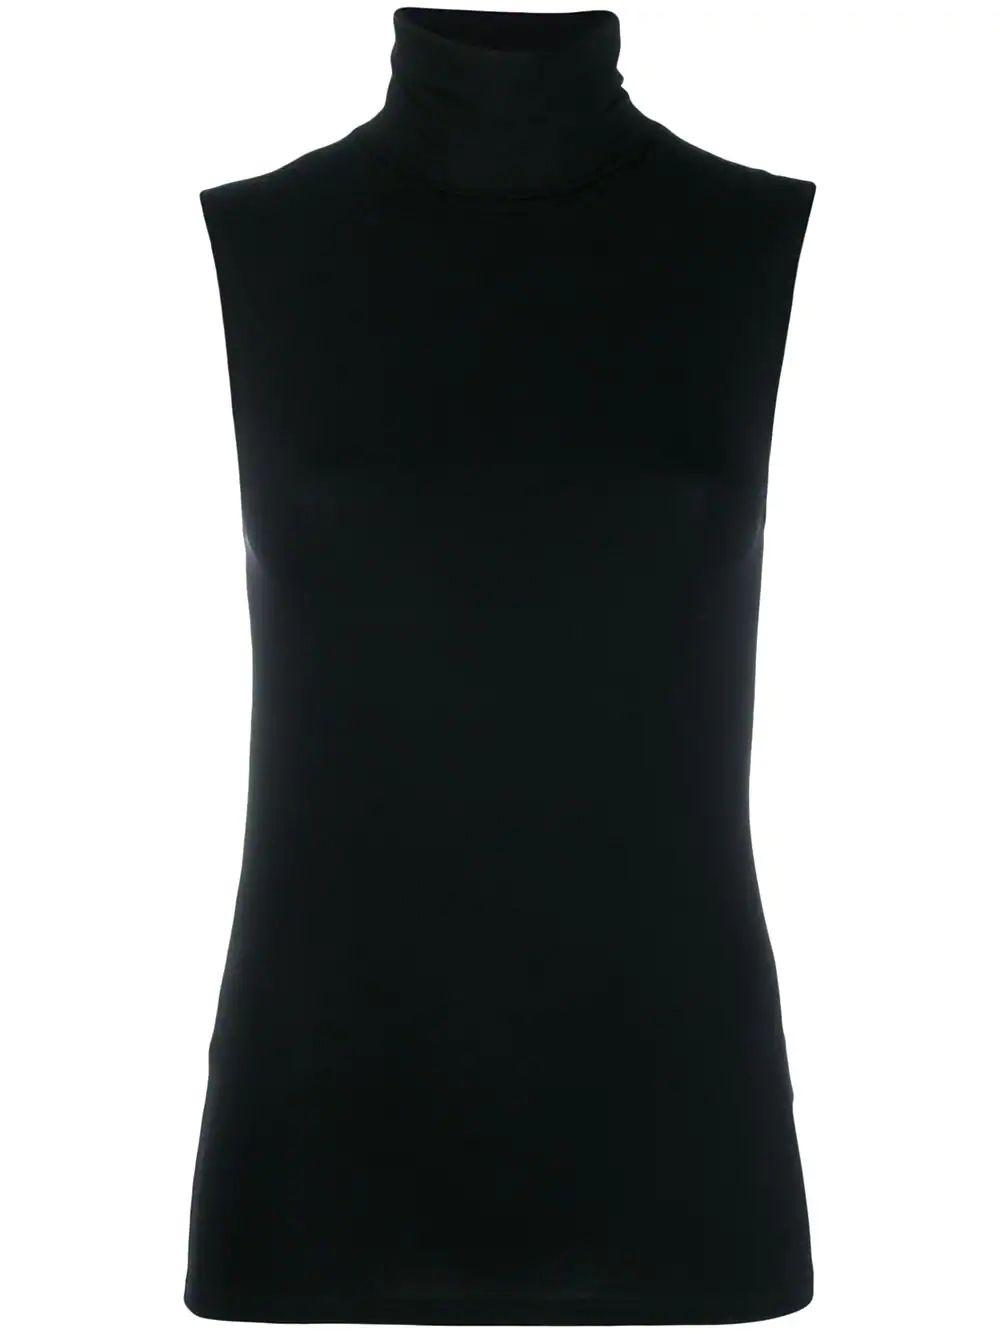 Viscose Elastane  Sleeveless Turtleneck